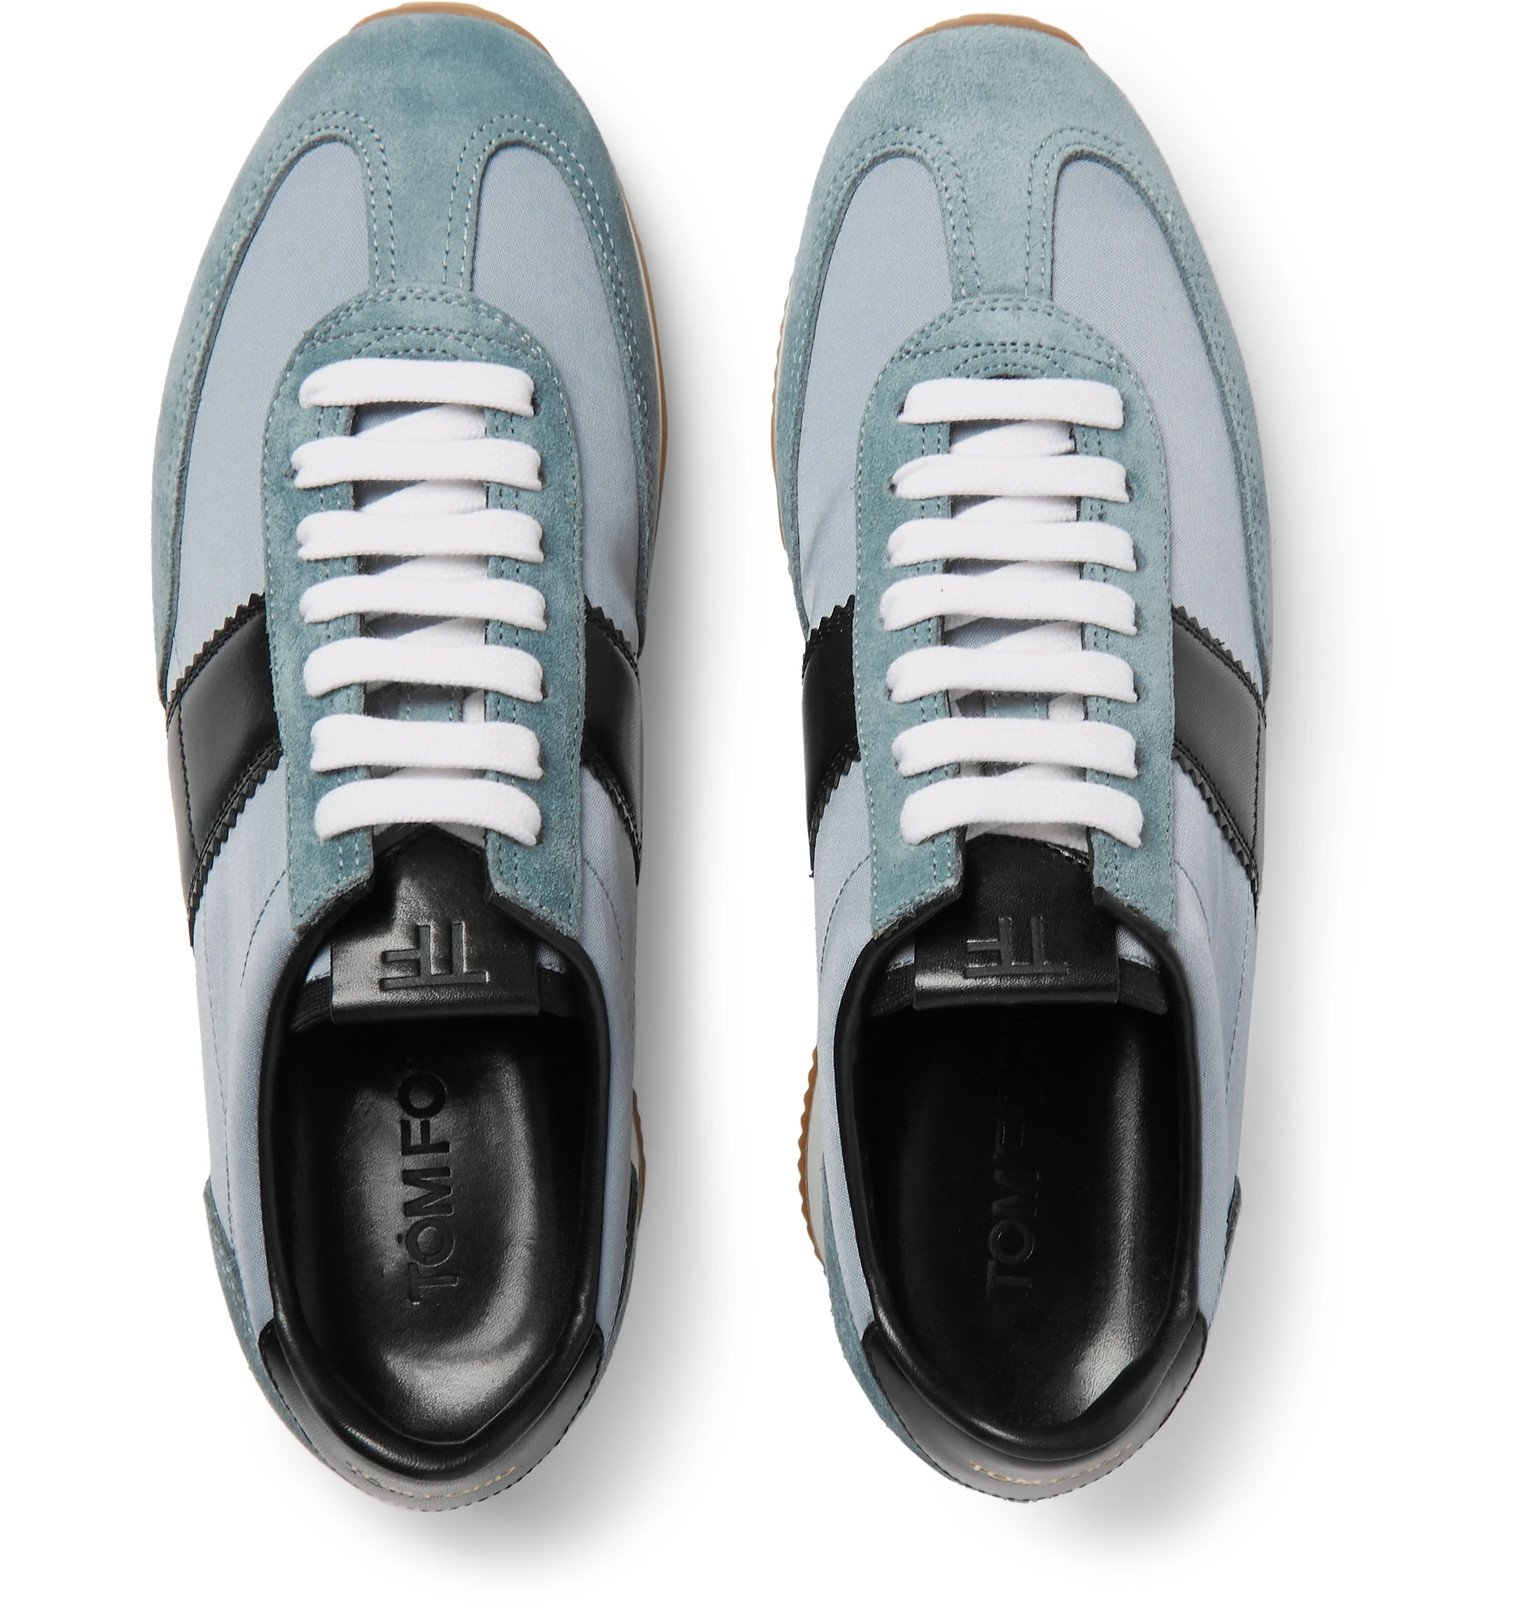 Tom Ford Retro Running Sneakers 5